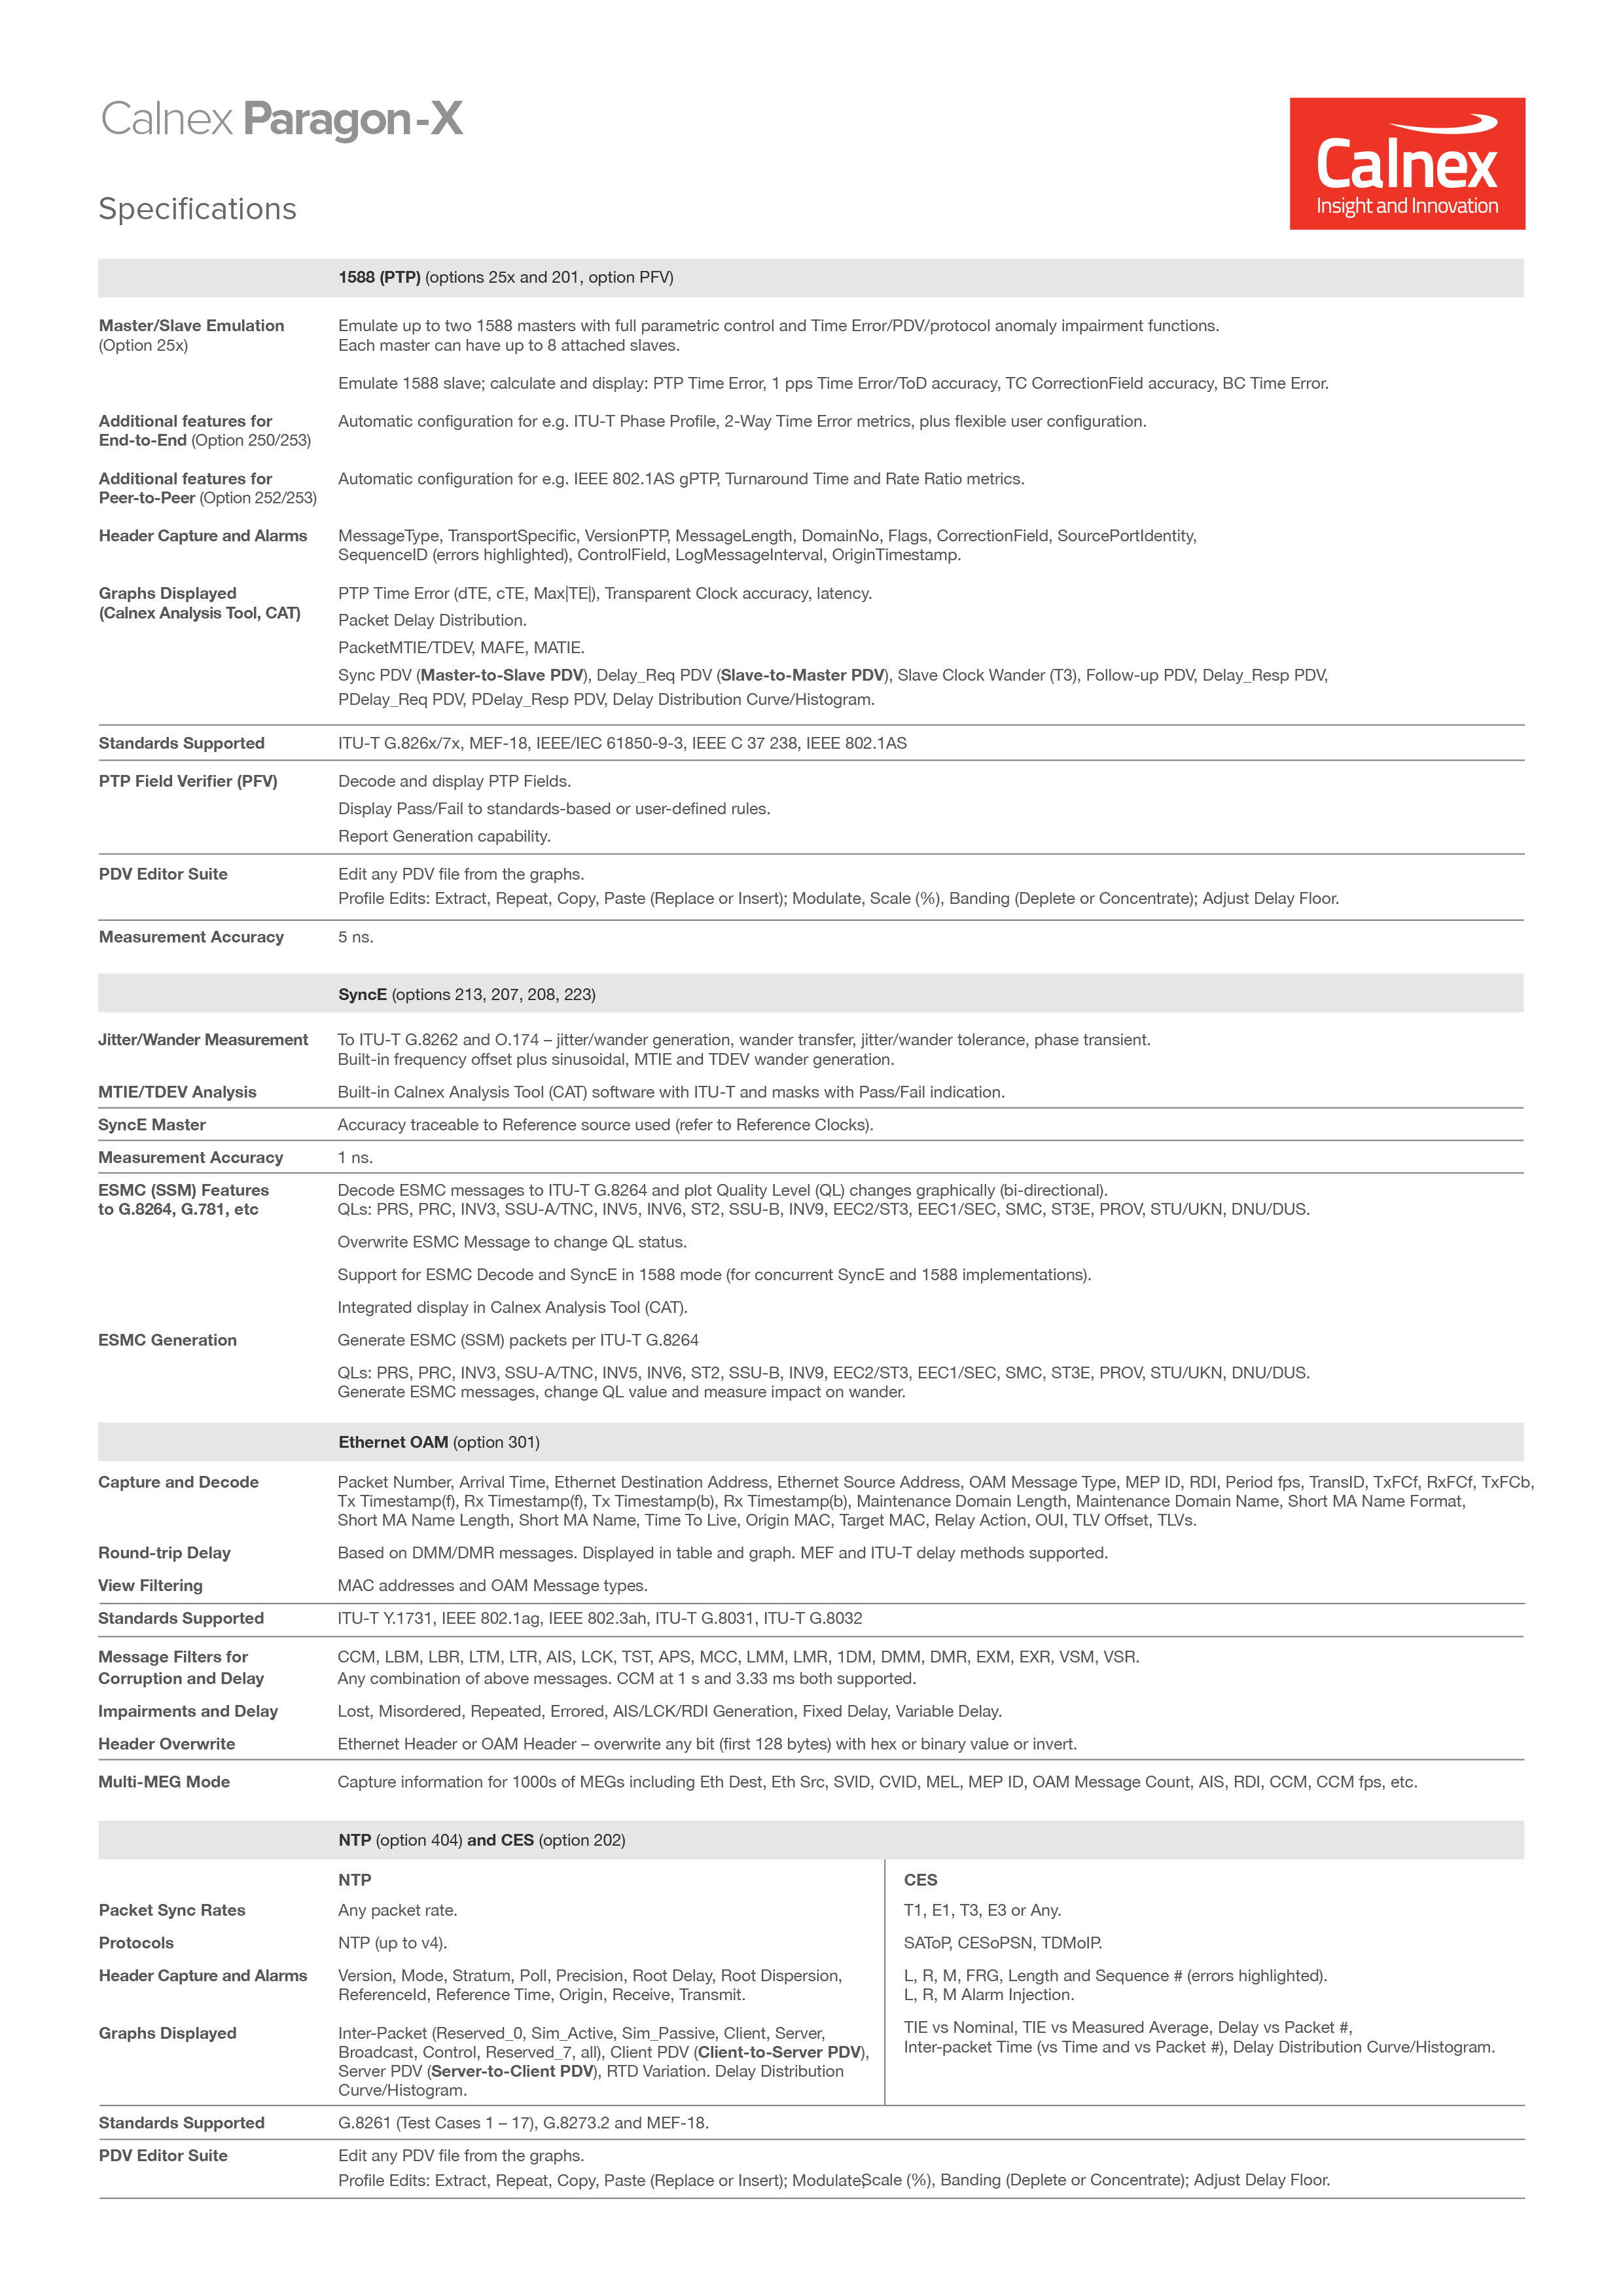 Paragon-X specifications